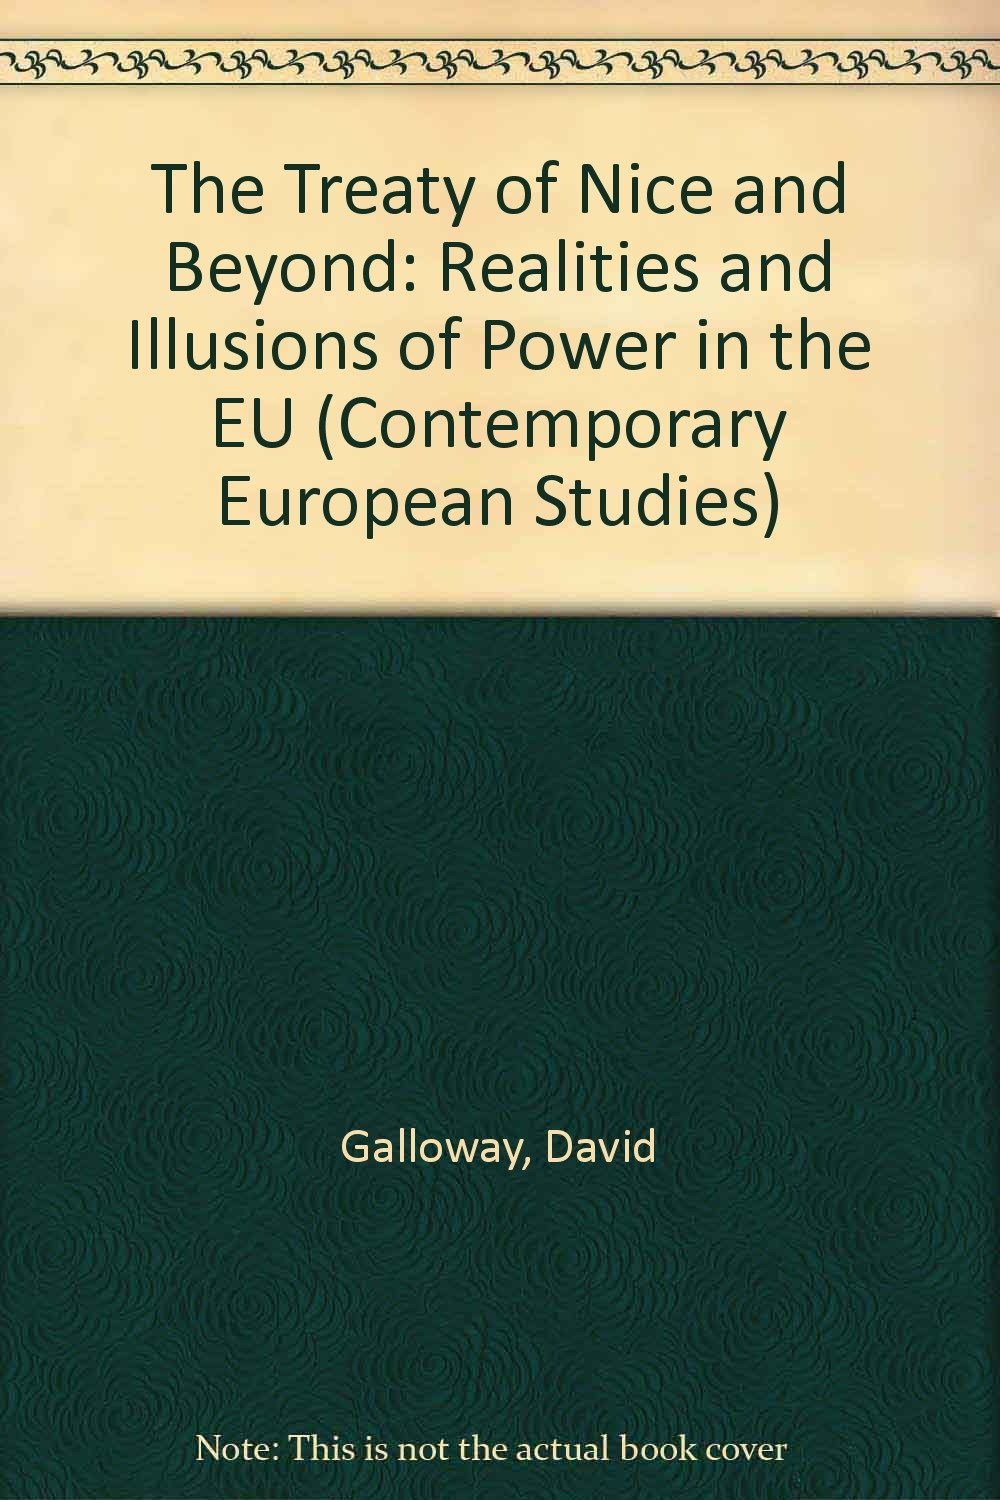 Download The Treaty of Nice and Beyond: Realities and Illusions of Power in the Eu (Contemporary European Studies, 10) ebook